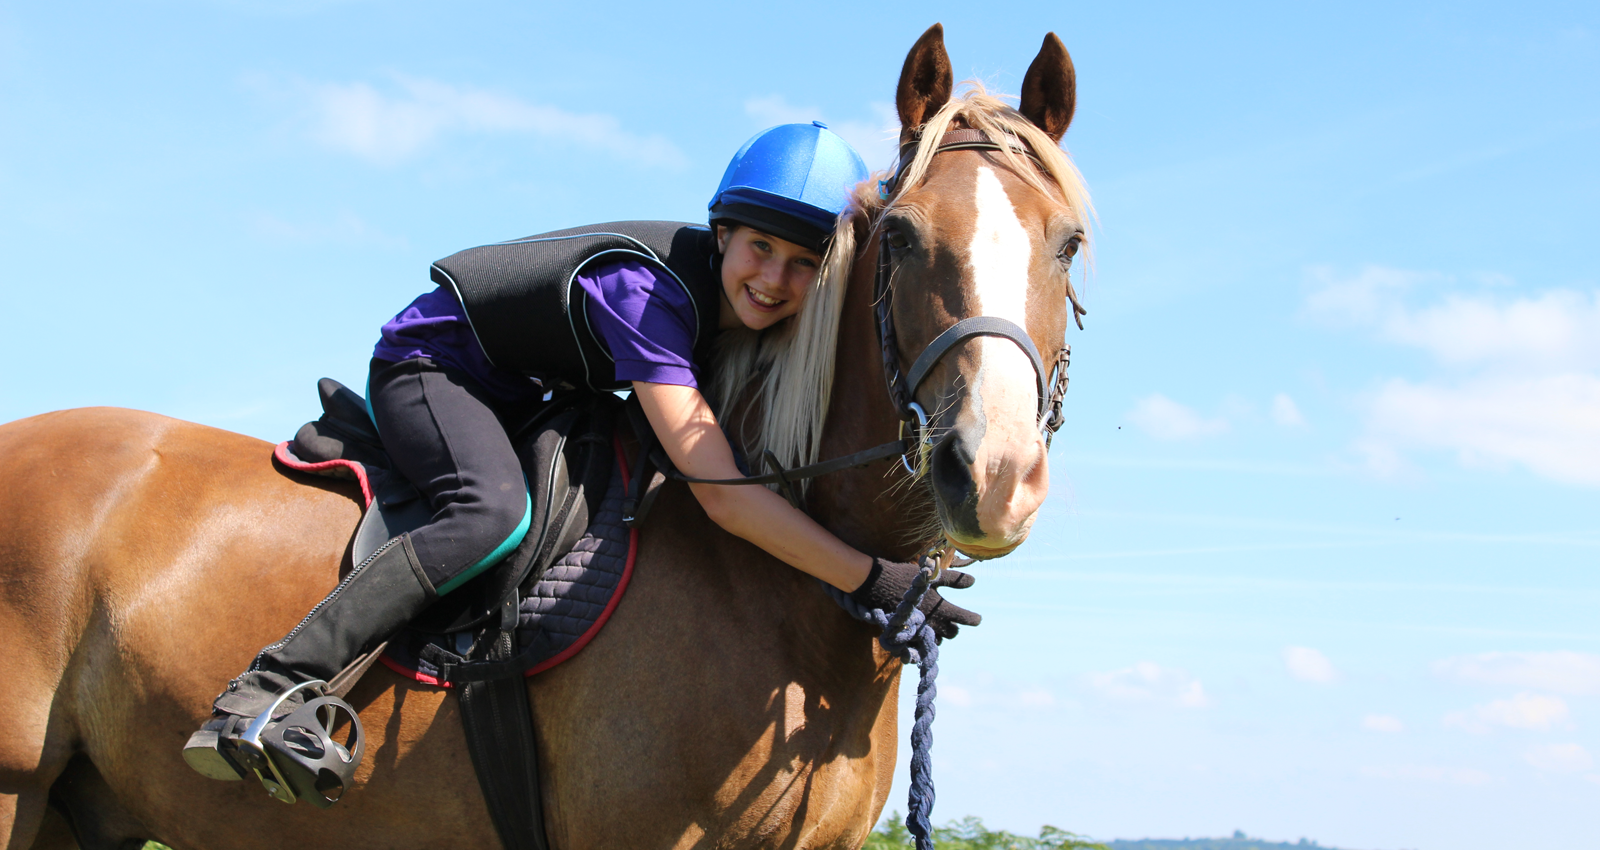 PGL Adventure Holidays - Specialist Holidays and Summer Camps for 7-17 year olds - Love to Learn - Climbing Adventure, Bushcraft, Cook's Academy, Surfing, Learner Driver, Wellbeing, Leadership Challenge, Pony Trekking & Riding